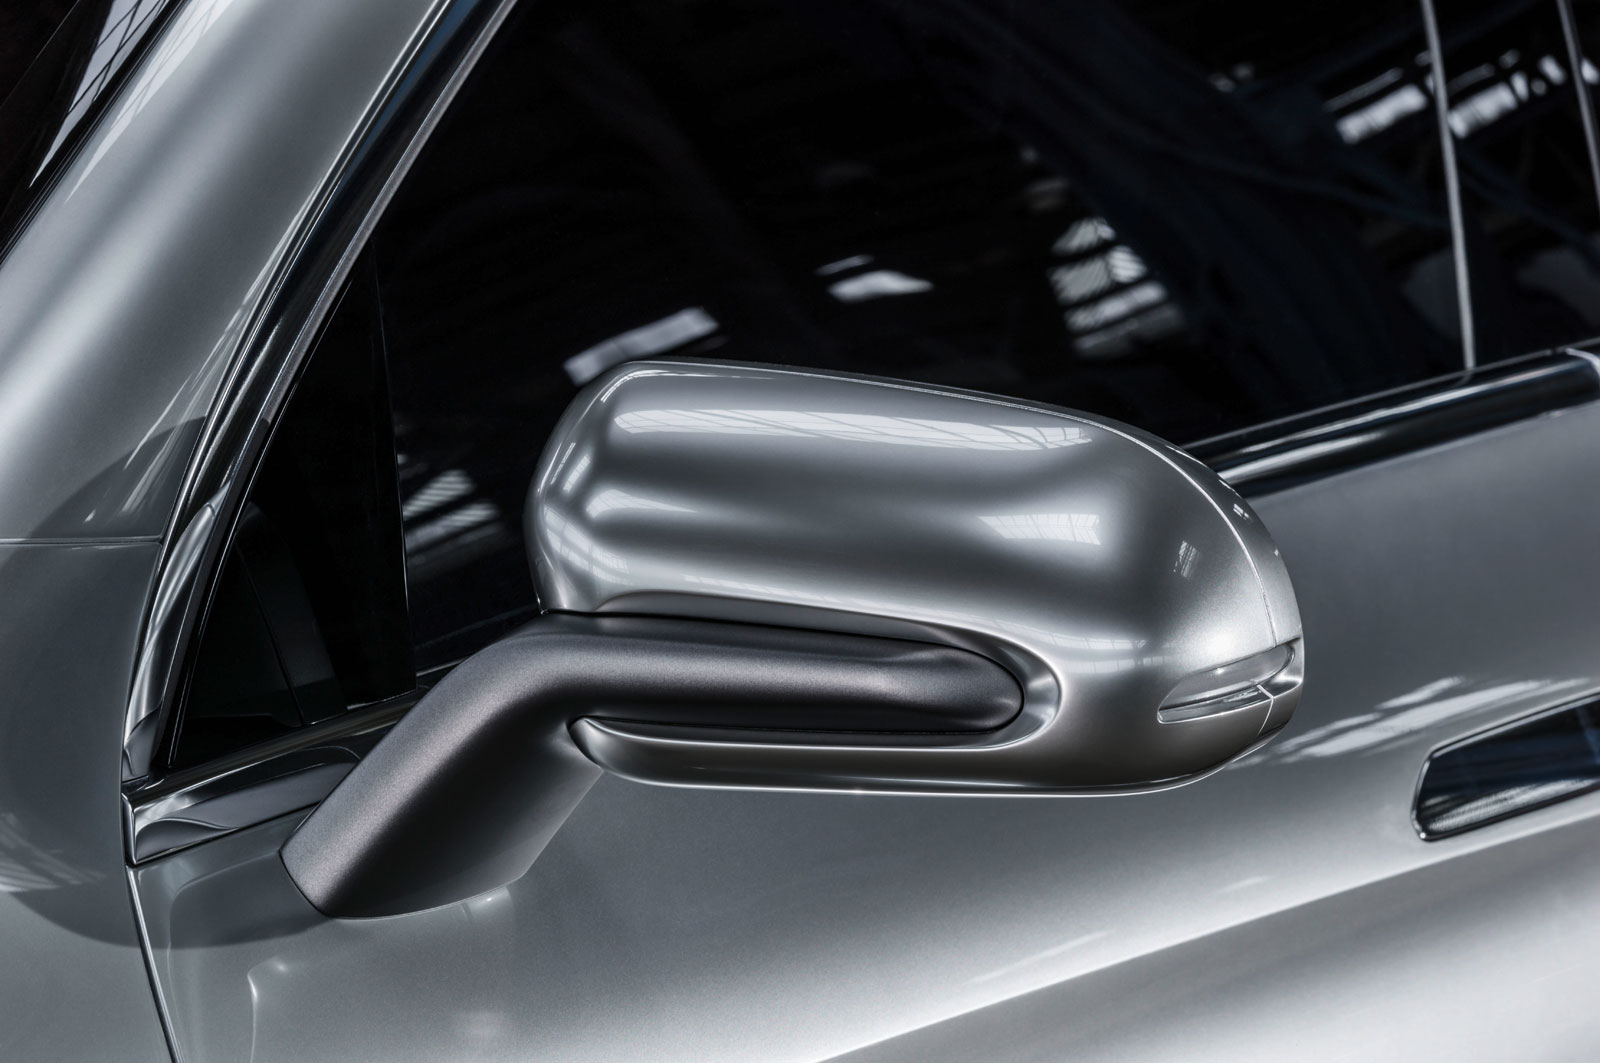 Mercedes benz concept coupe suv side mirror car body for Mercedes benz side mirror